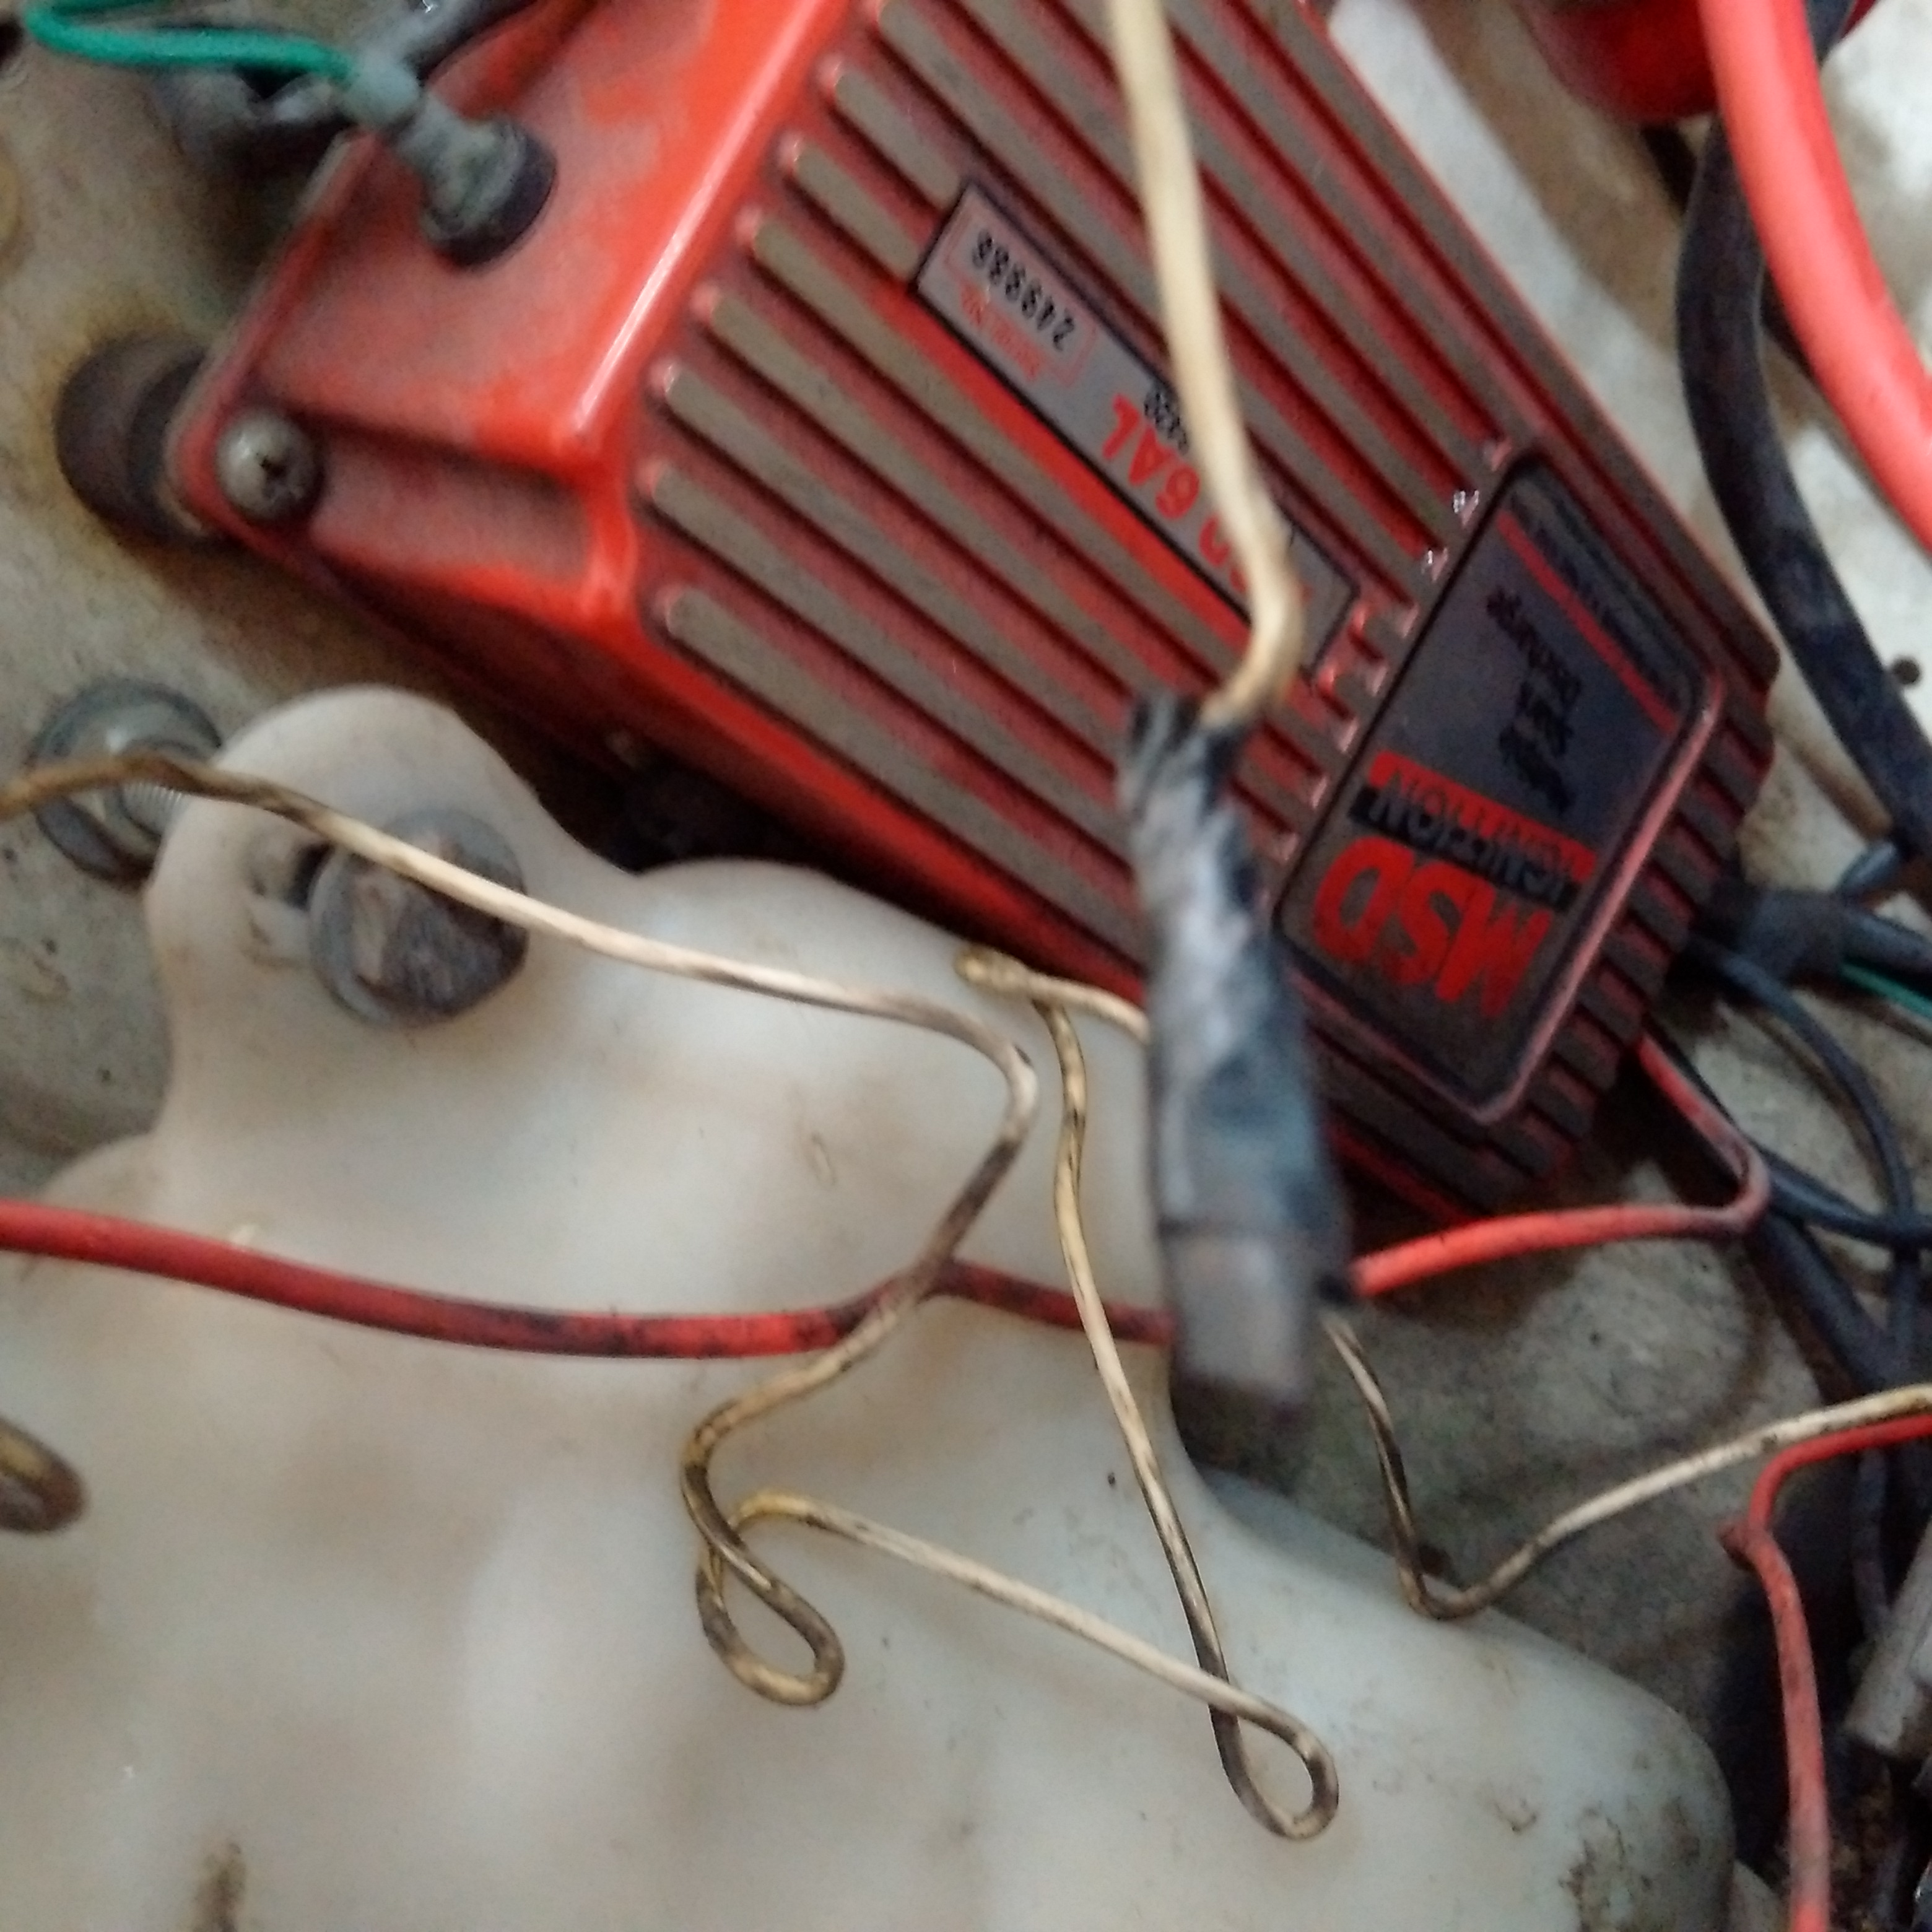 1974 Mustang Ii Engine Harness Replacement Programming Mustangs Wiring After Removing All The Electrical Tape From Wires I Found That A Good Majority Of Wire Was Corroded Connected Improperly And Completely Overused